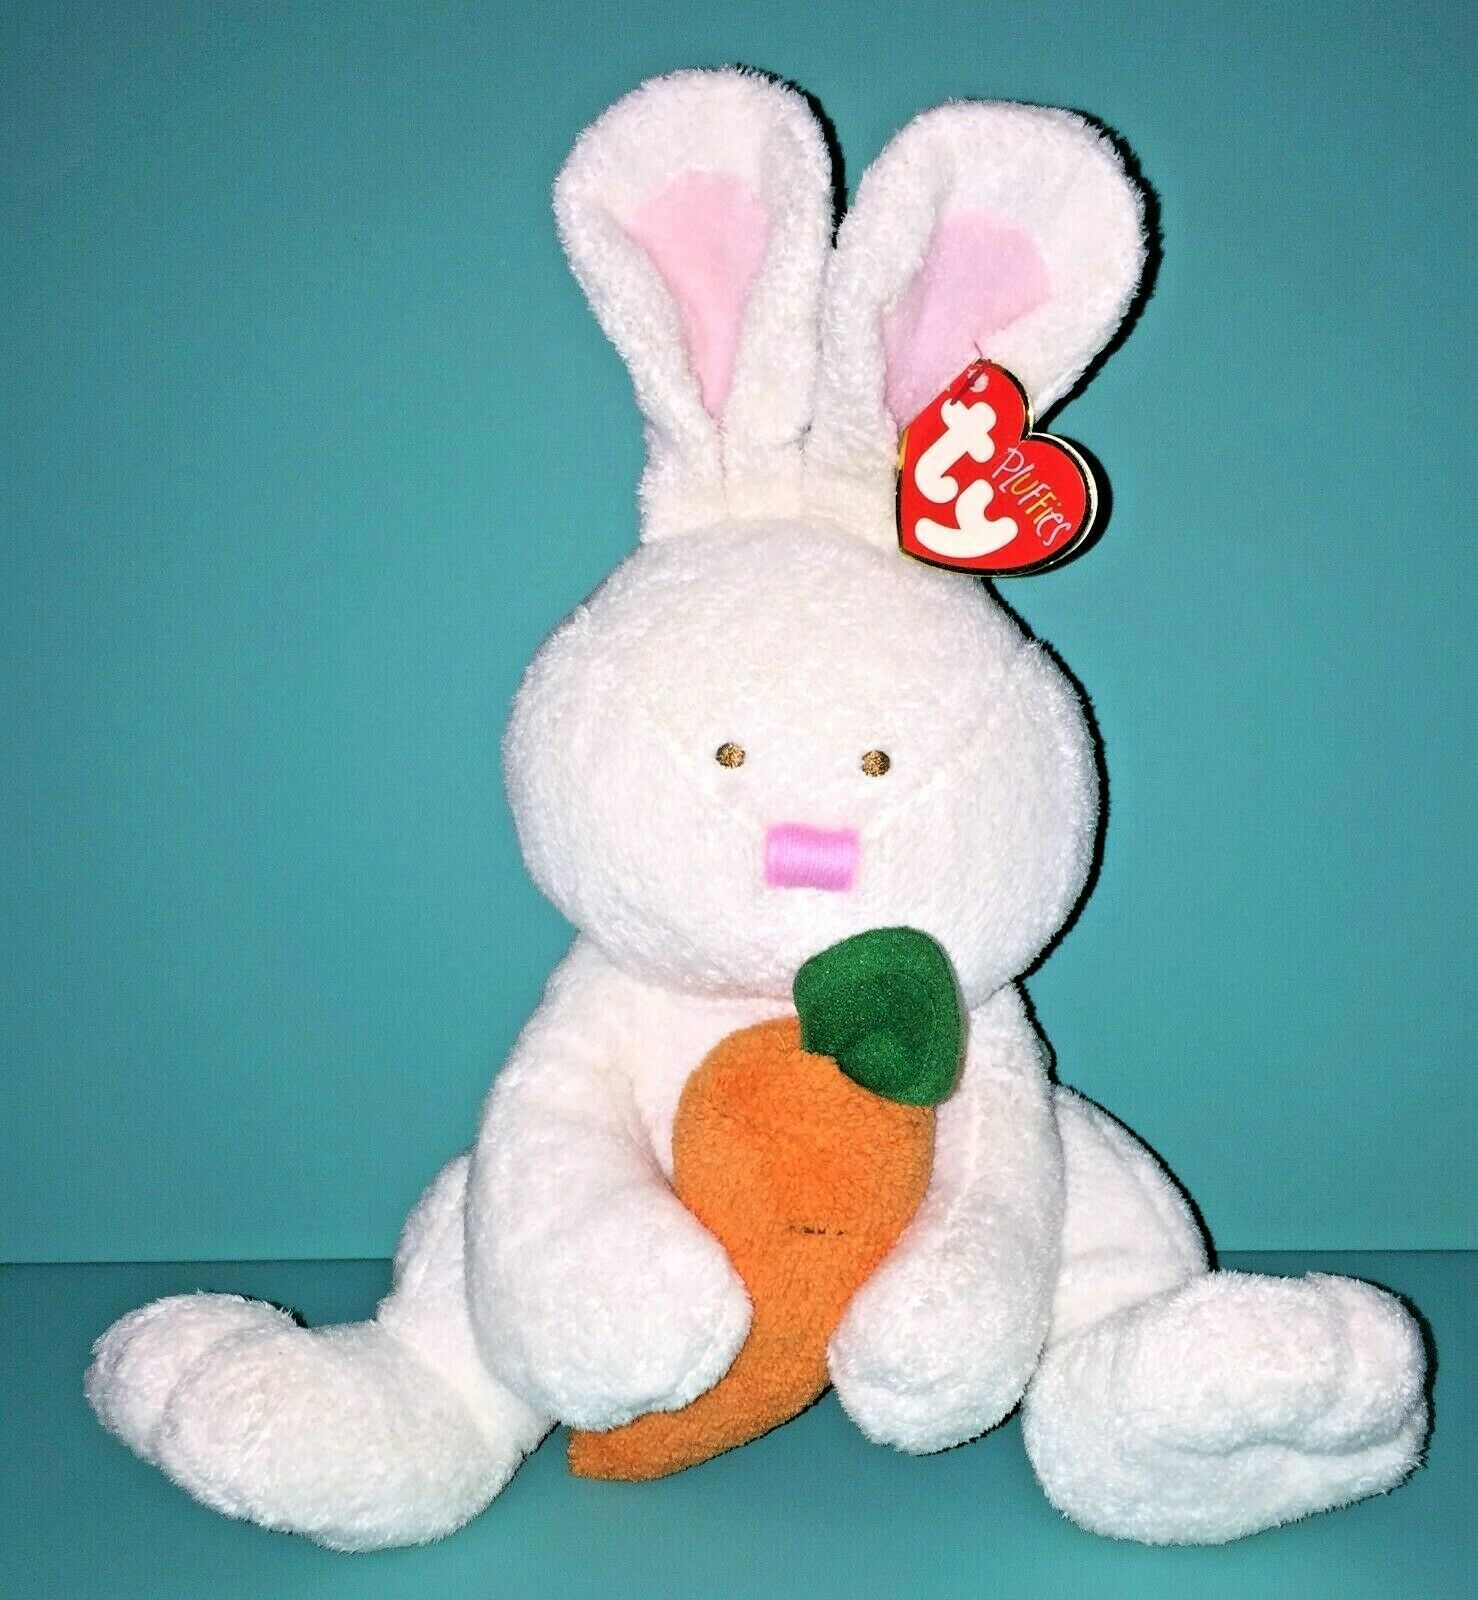 Primary image for Ty Pluffies Snackers Bunny Rabbit White Plush Carrot Stuffed Animal Lovey 2005